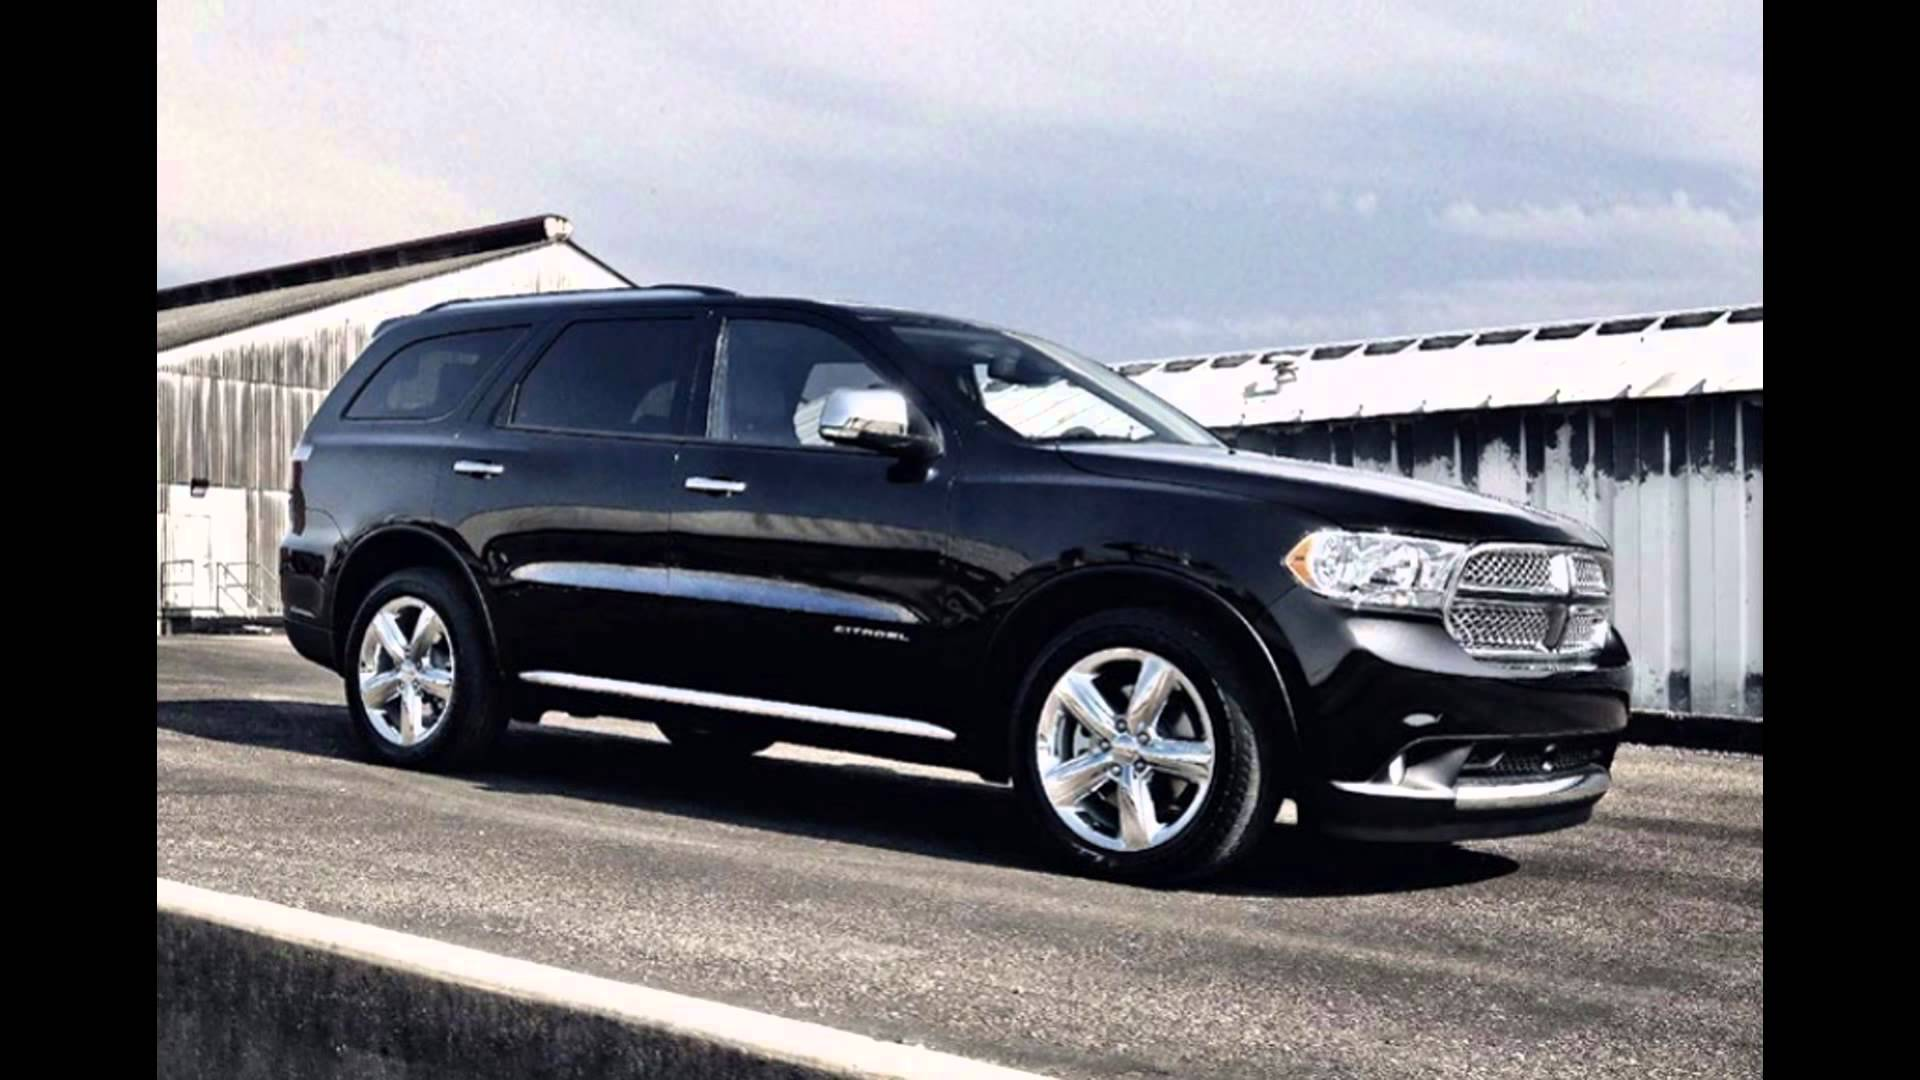 Cars for Sale Close to Me Unique Best Reviews Of Suv Cars for Sale Near Me with Cheap Price From Many